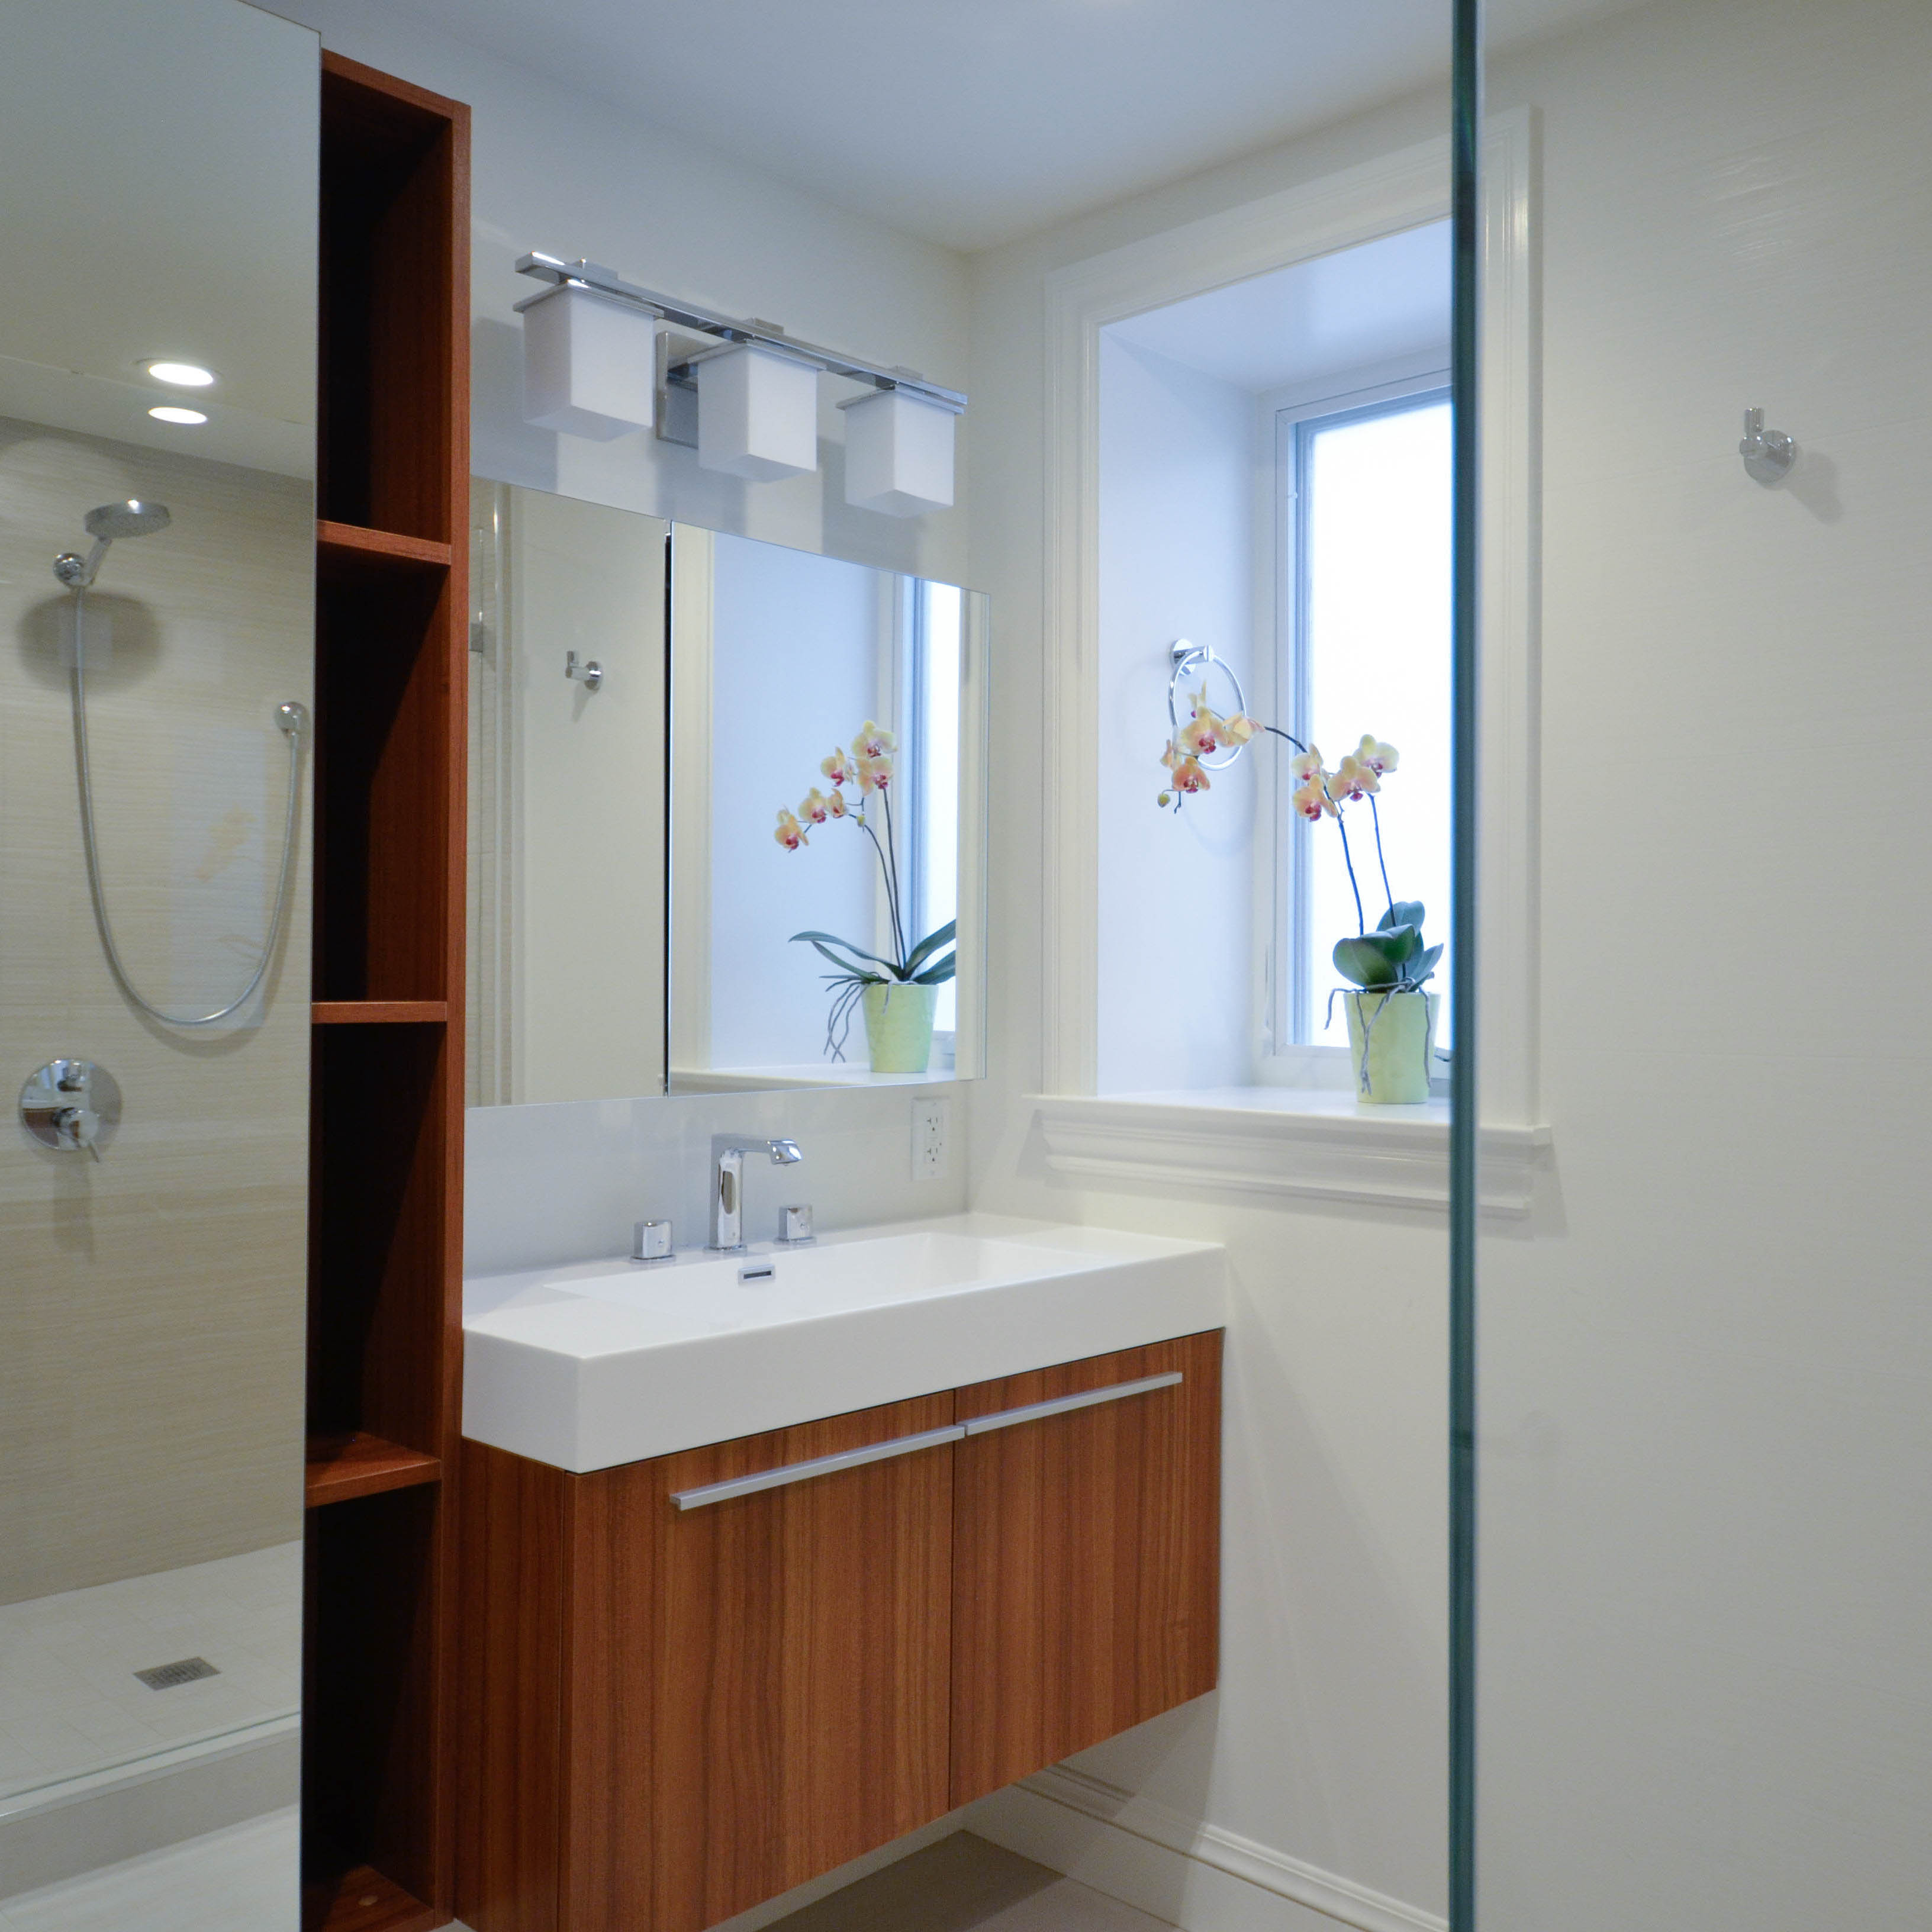 Bathrooms In San Francisco 28 Images Best Hotel Bathrooms In San Francisco The St Regis San